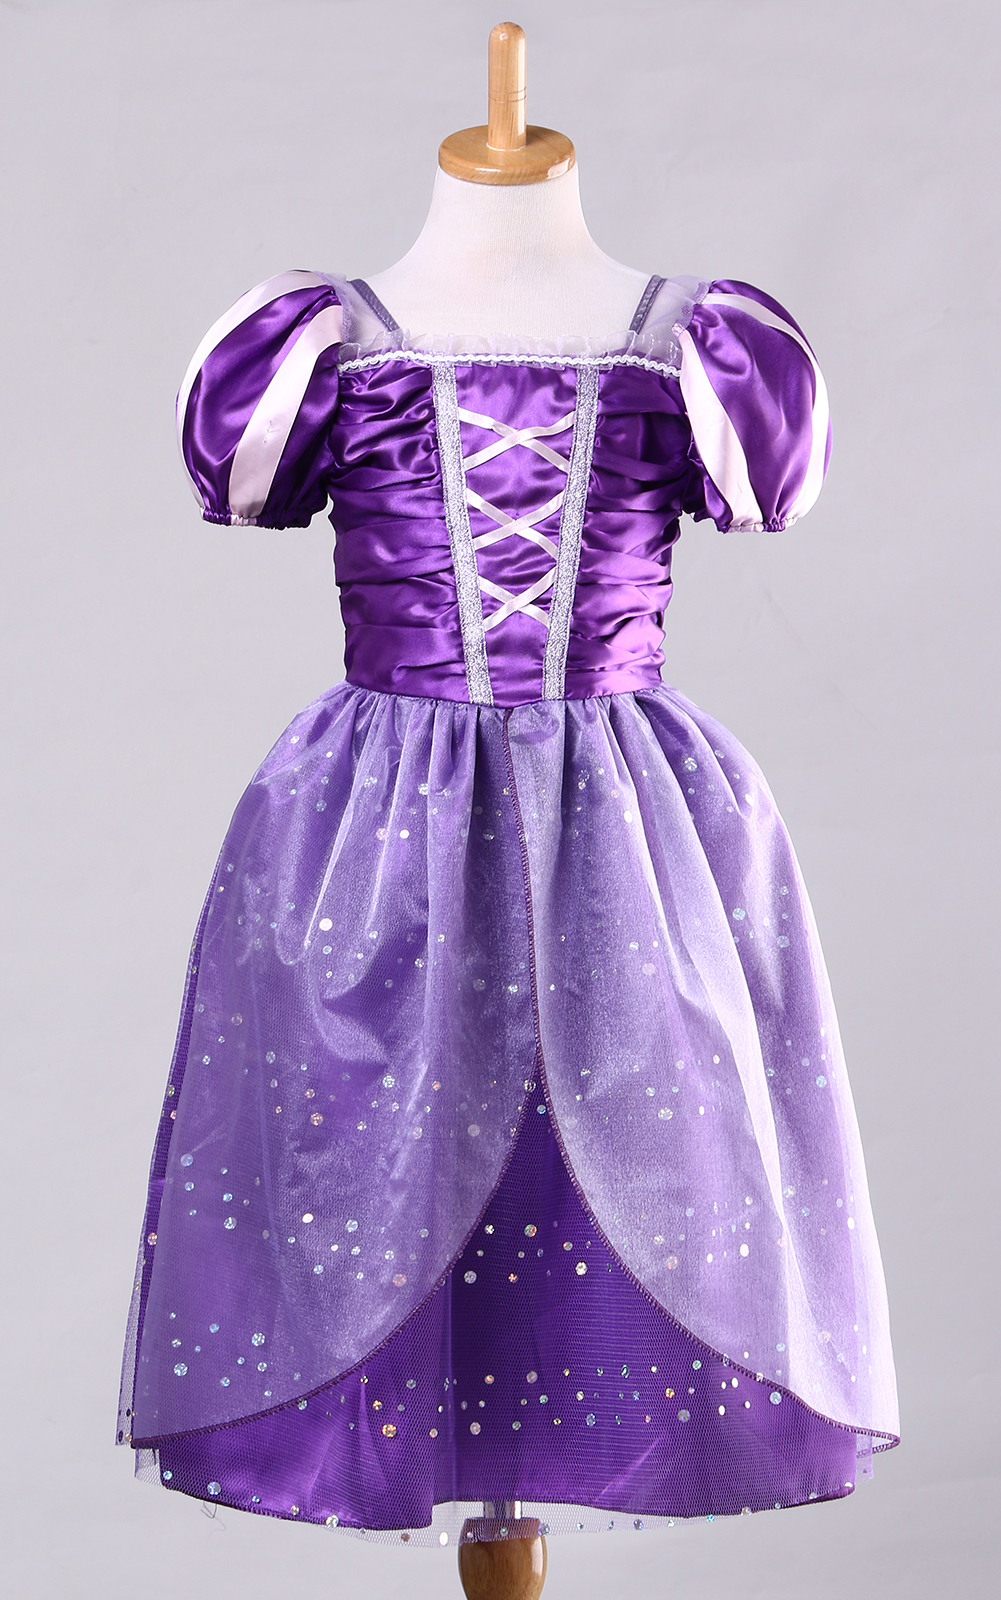 Kids Tangled Rapunzel Costume Girls Halloween Princess